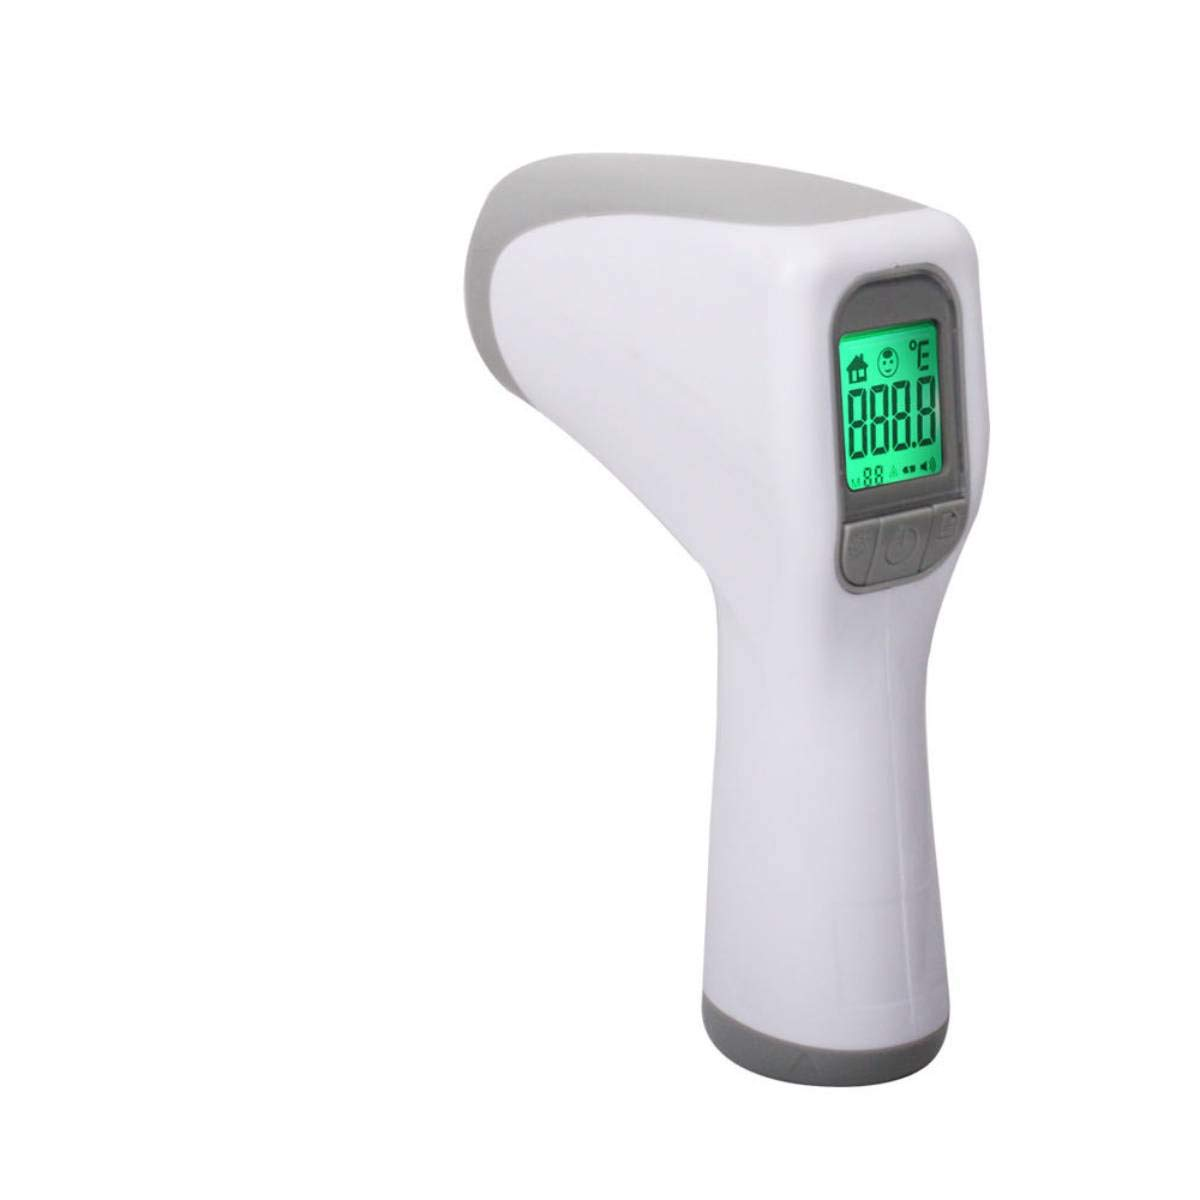 Digital Infrared Temperature Non Contact Ear Forehead Thermometer LCD Handheld Thermometer for Baby Kids Adults Indoor and Outdoor